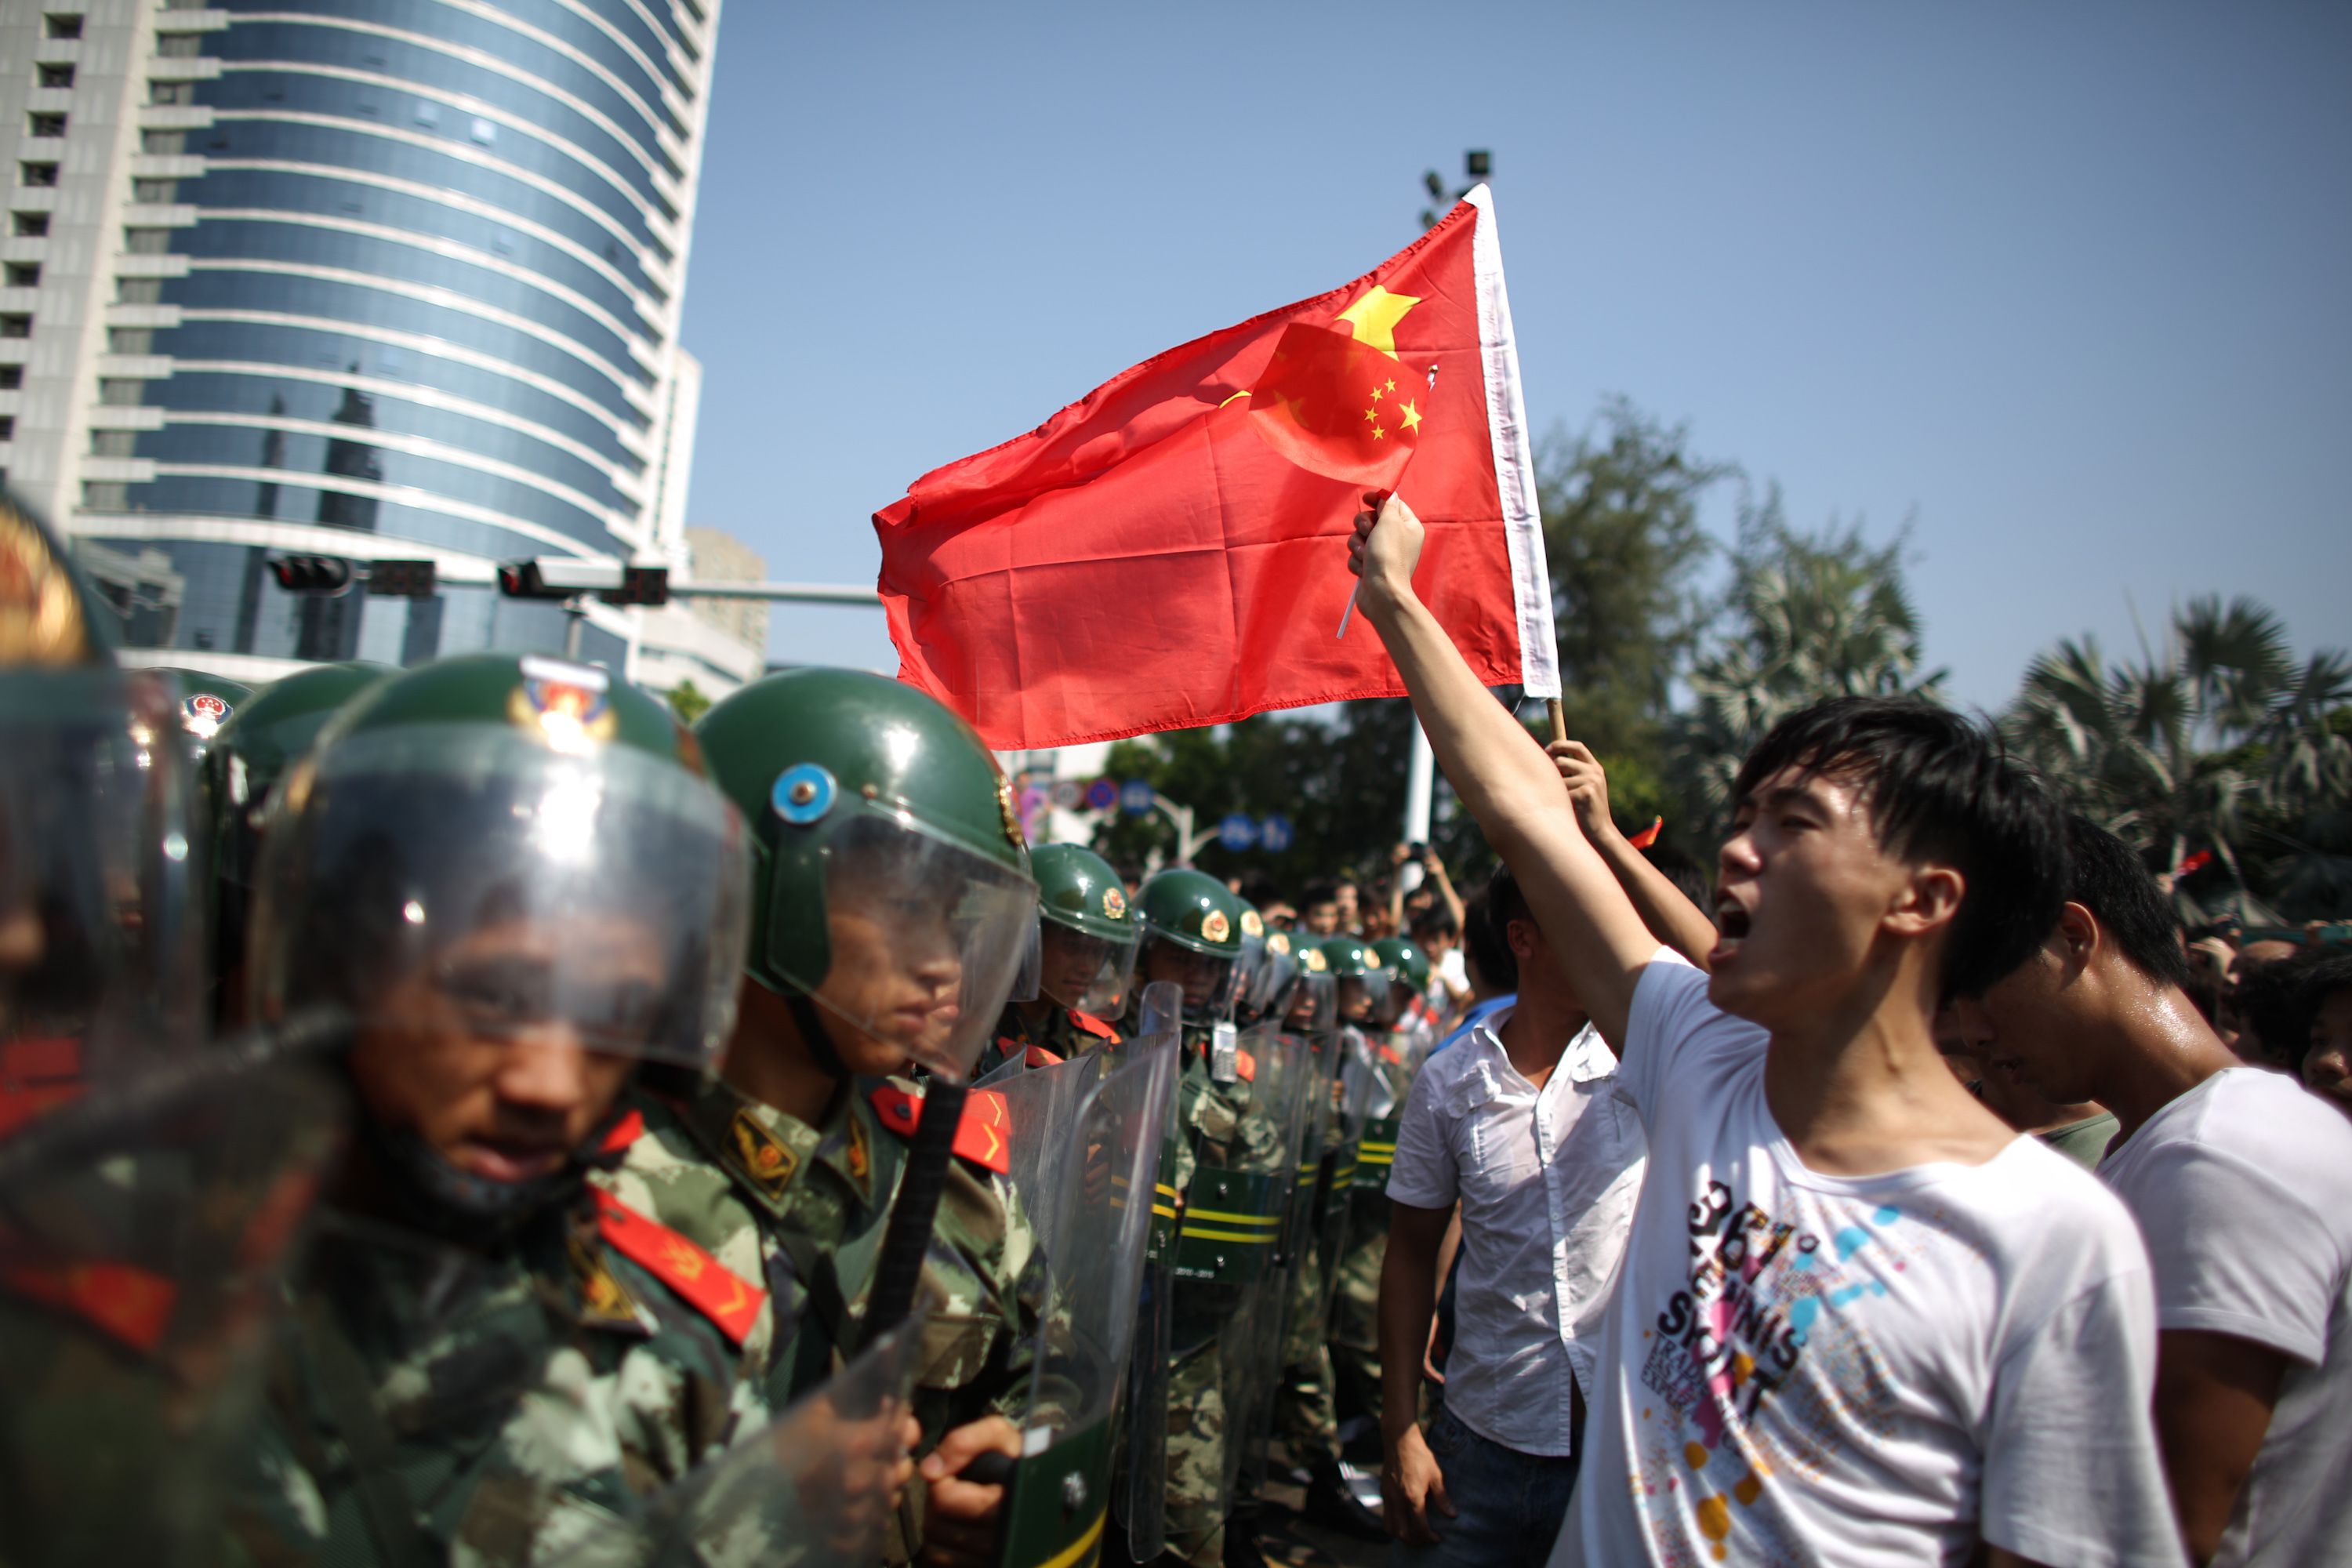 Anti-Japan protesters are confronted by police as they demonstrate over the disputed Diaoyu/Senkaku Islands on Sept. 16, 2012, in Shenzhen